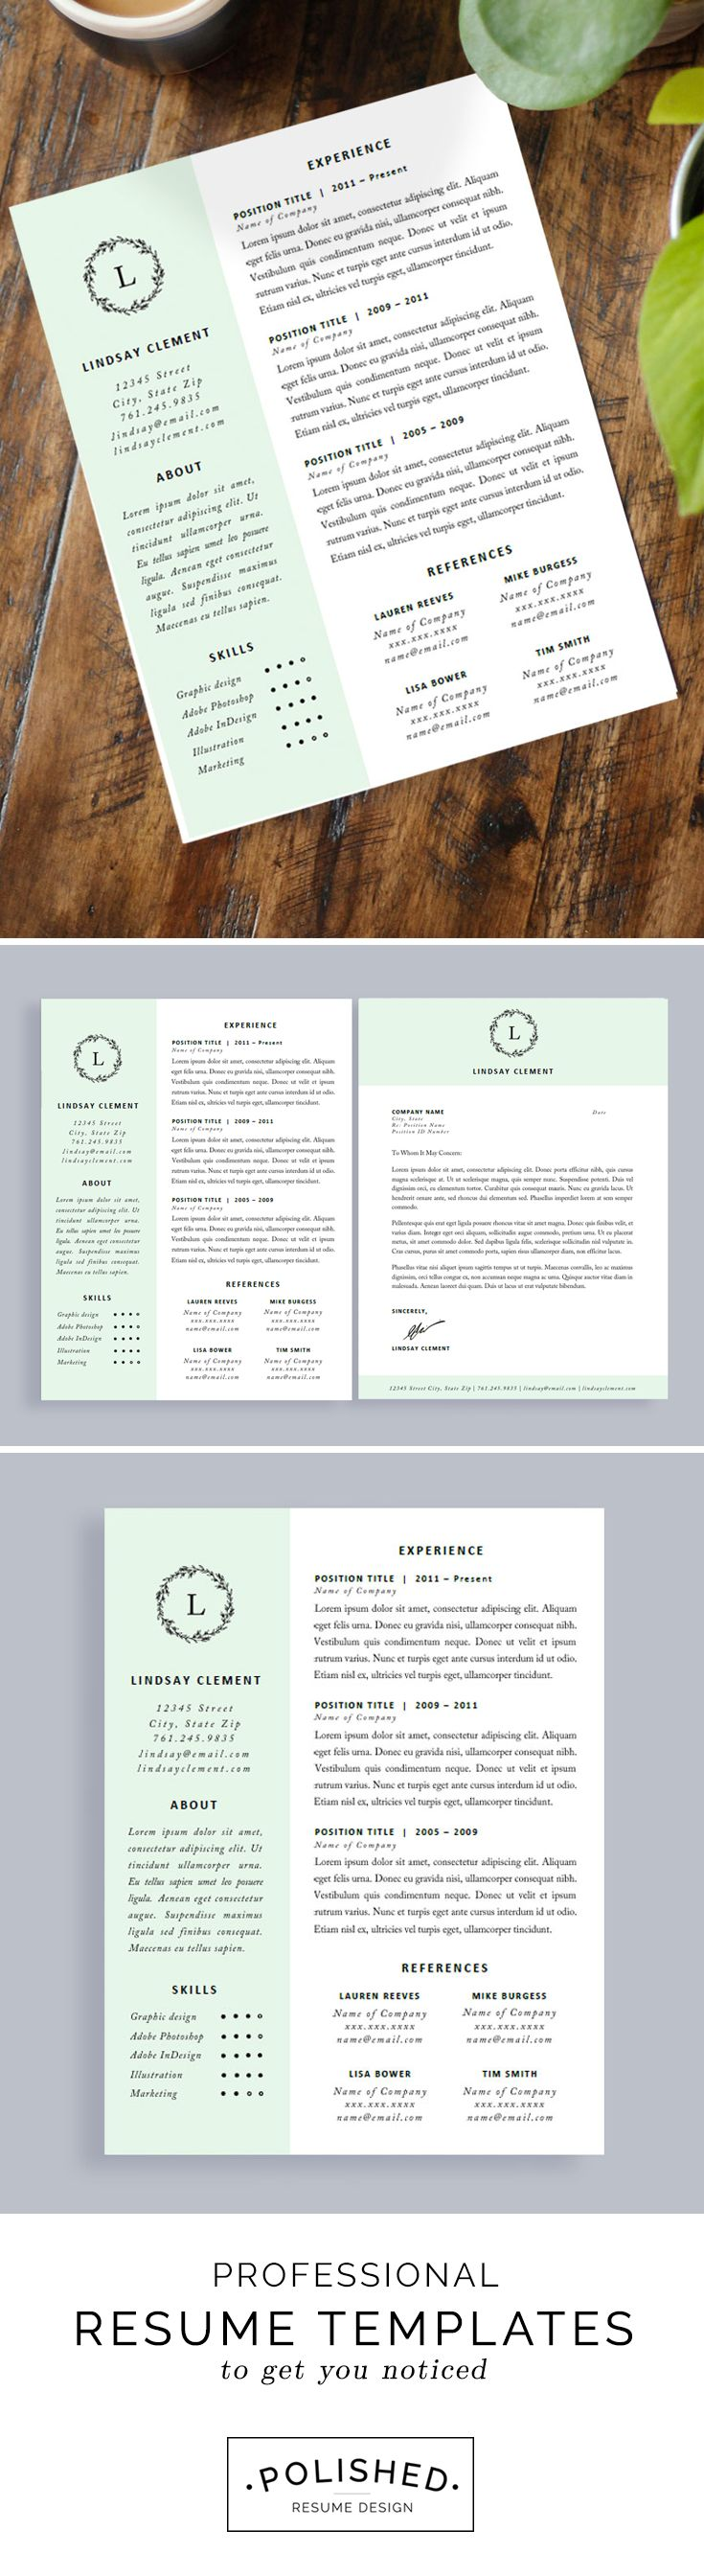 professional resume templates for microsoft word features 1 and 2 page options plus a free free cover lettercover